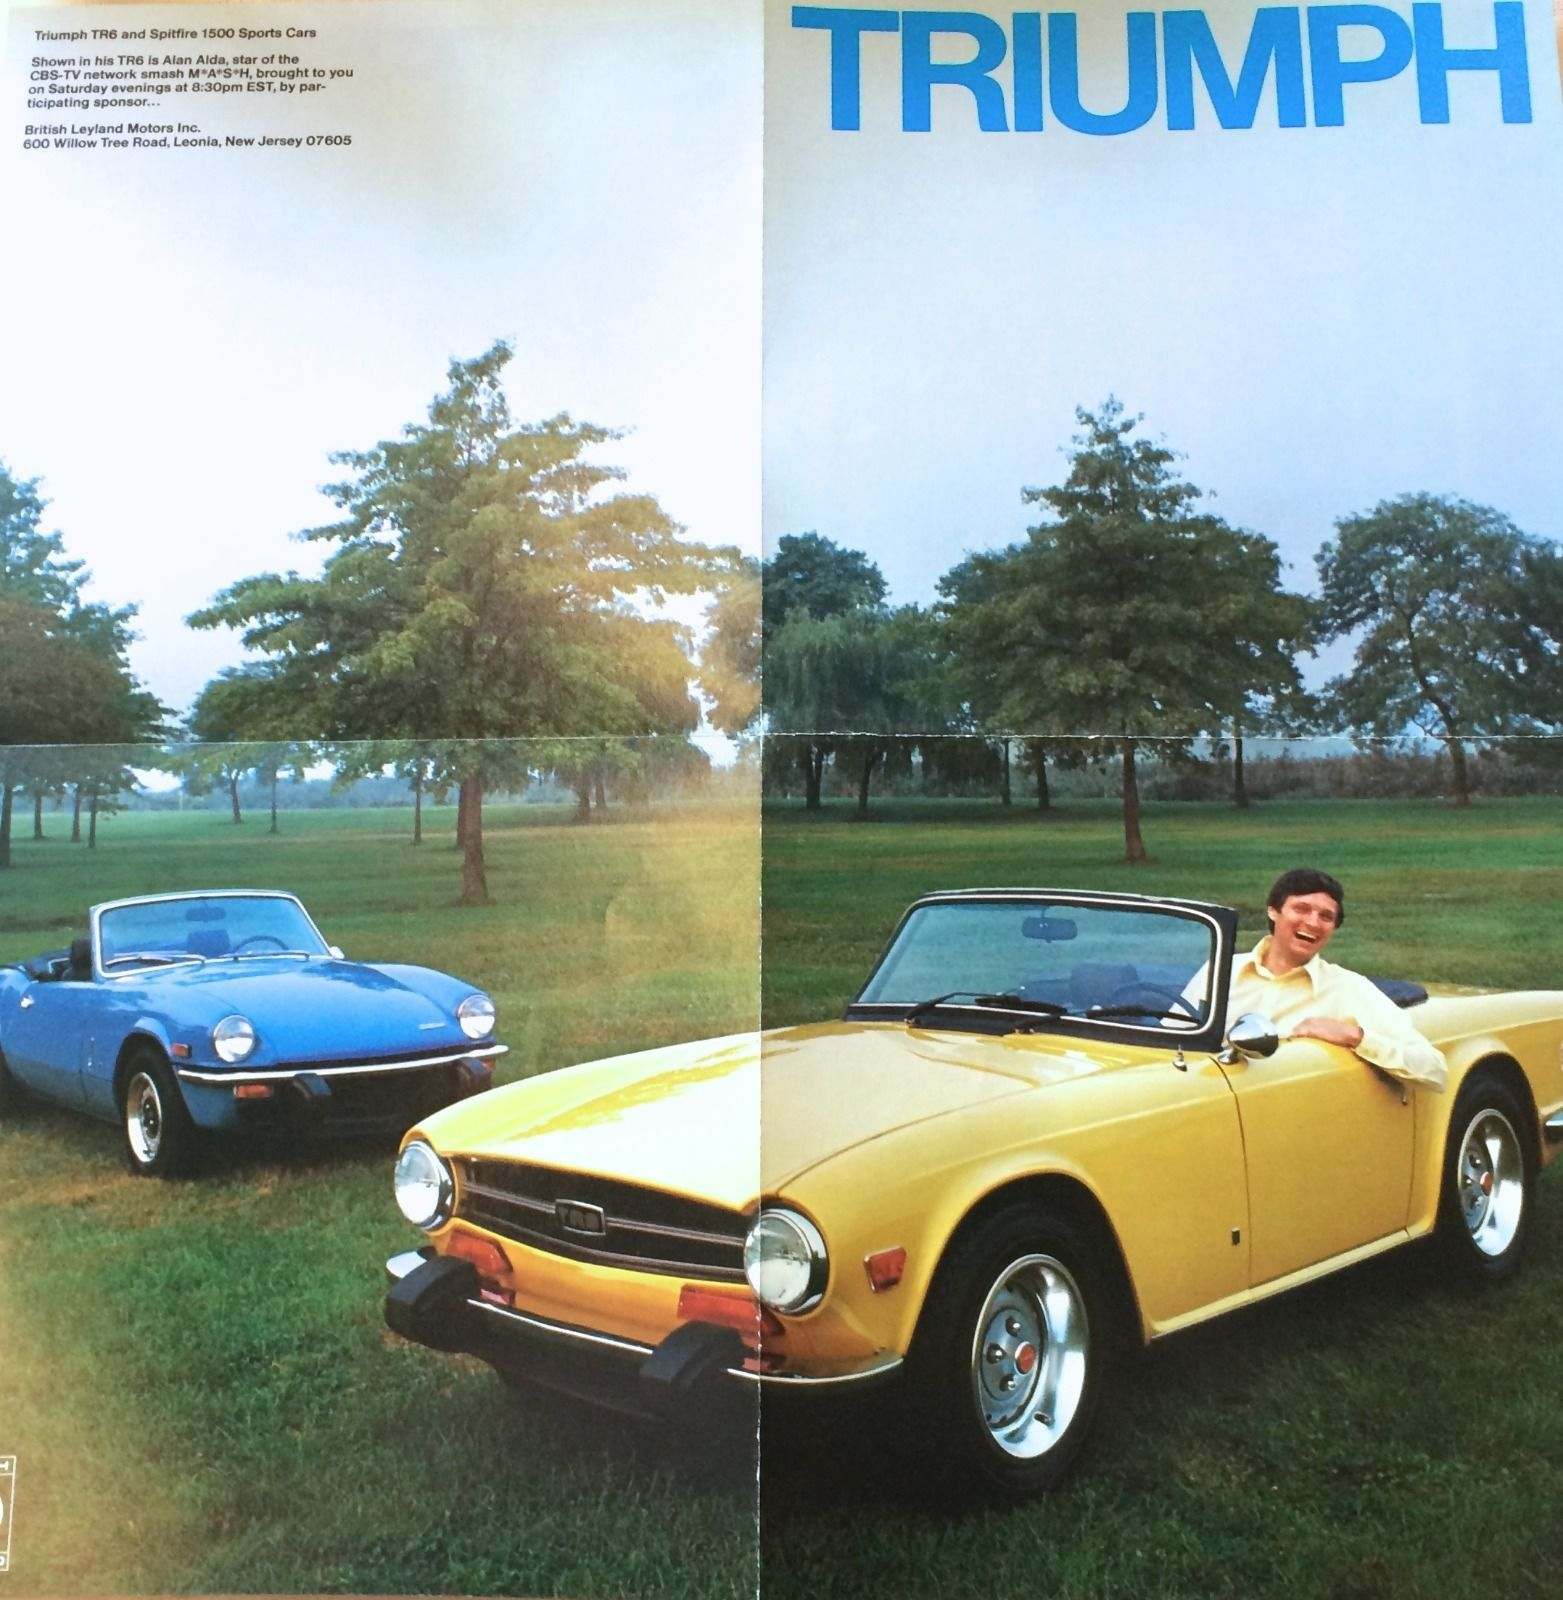 Vintage triumph tr6 and spitfire ad from 1974 with alan alda of m a